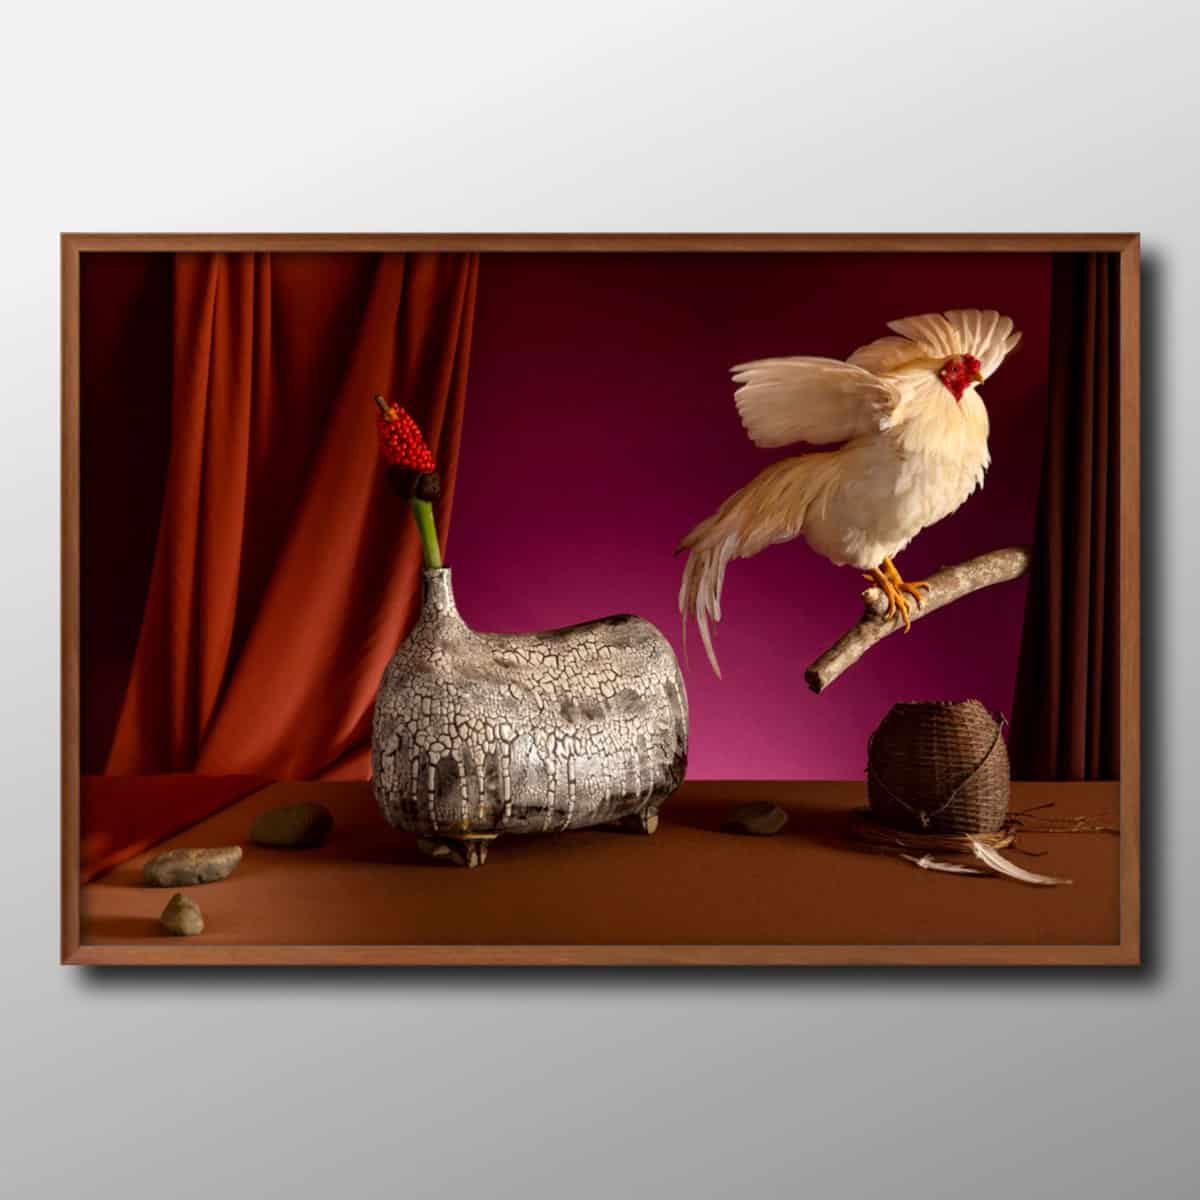 still_life_art_photography_photographer_vietnam_flower_animal_vietnam_chicken1